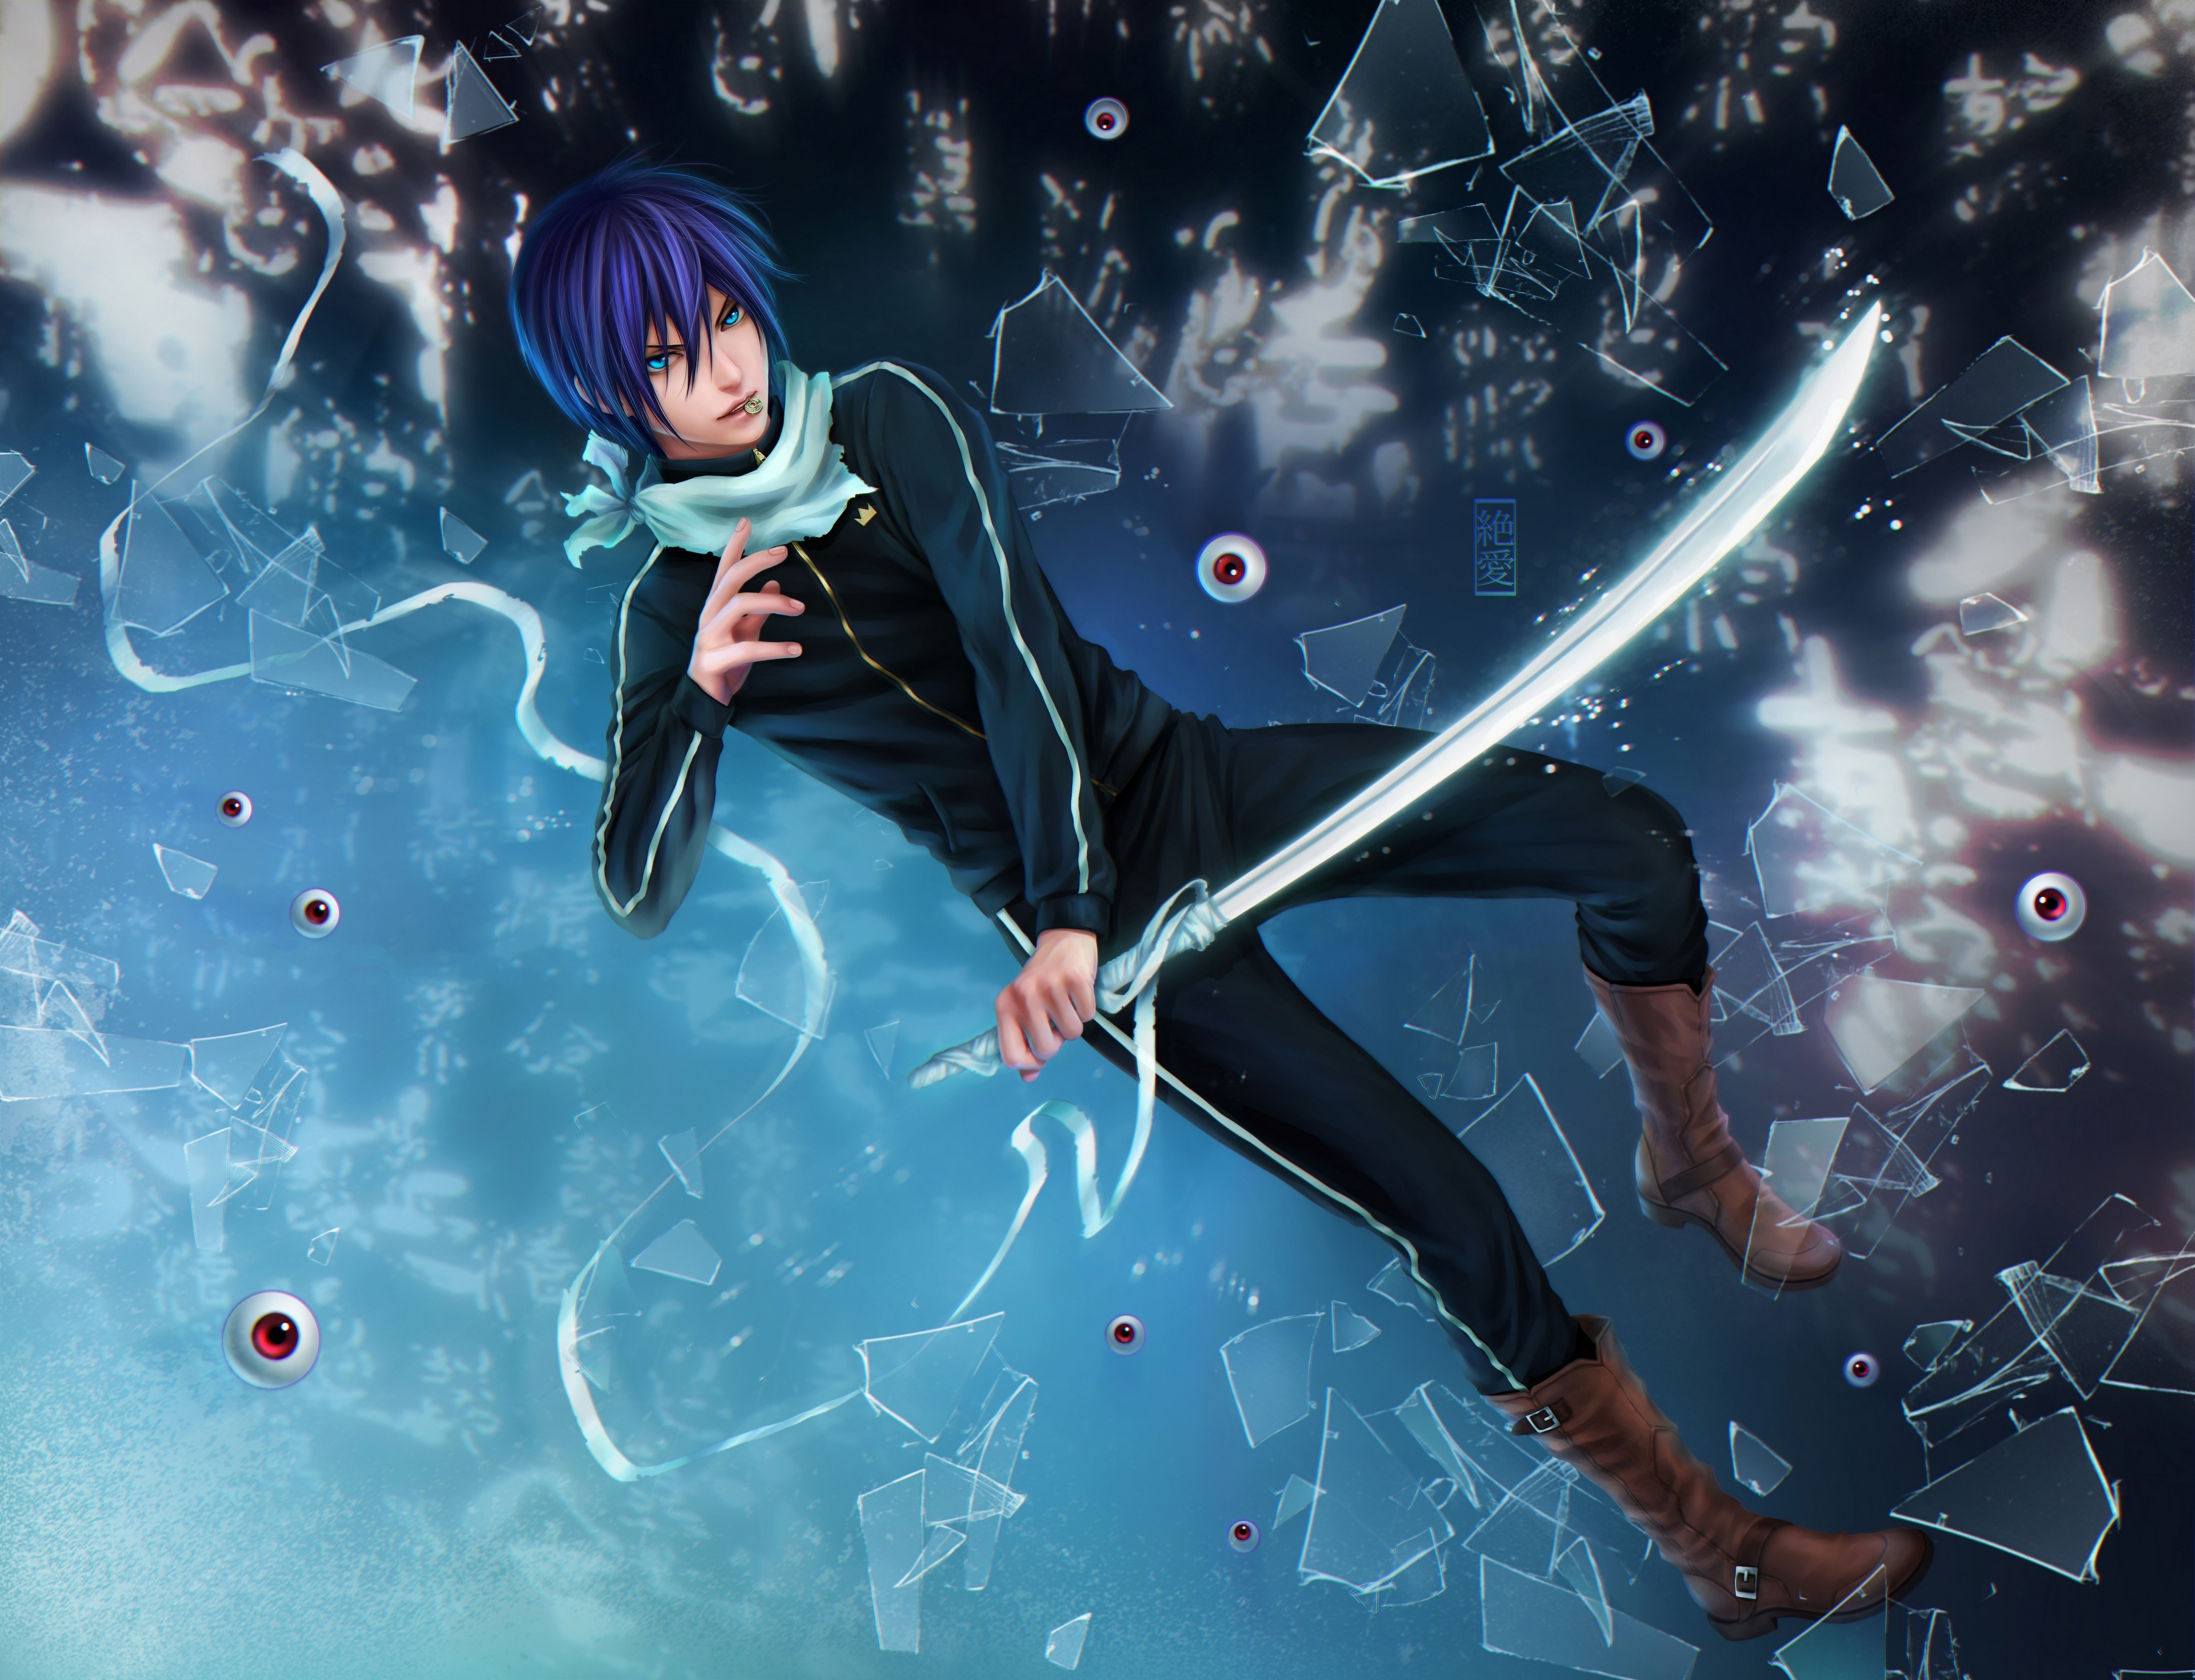 Noragami Full HD Wallpaper and Background | 1920x1080 | ID:695940